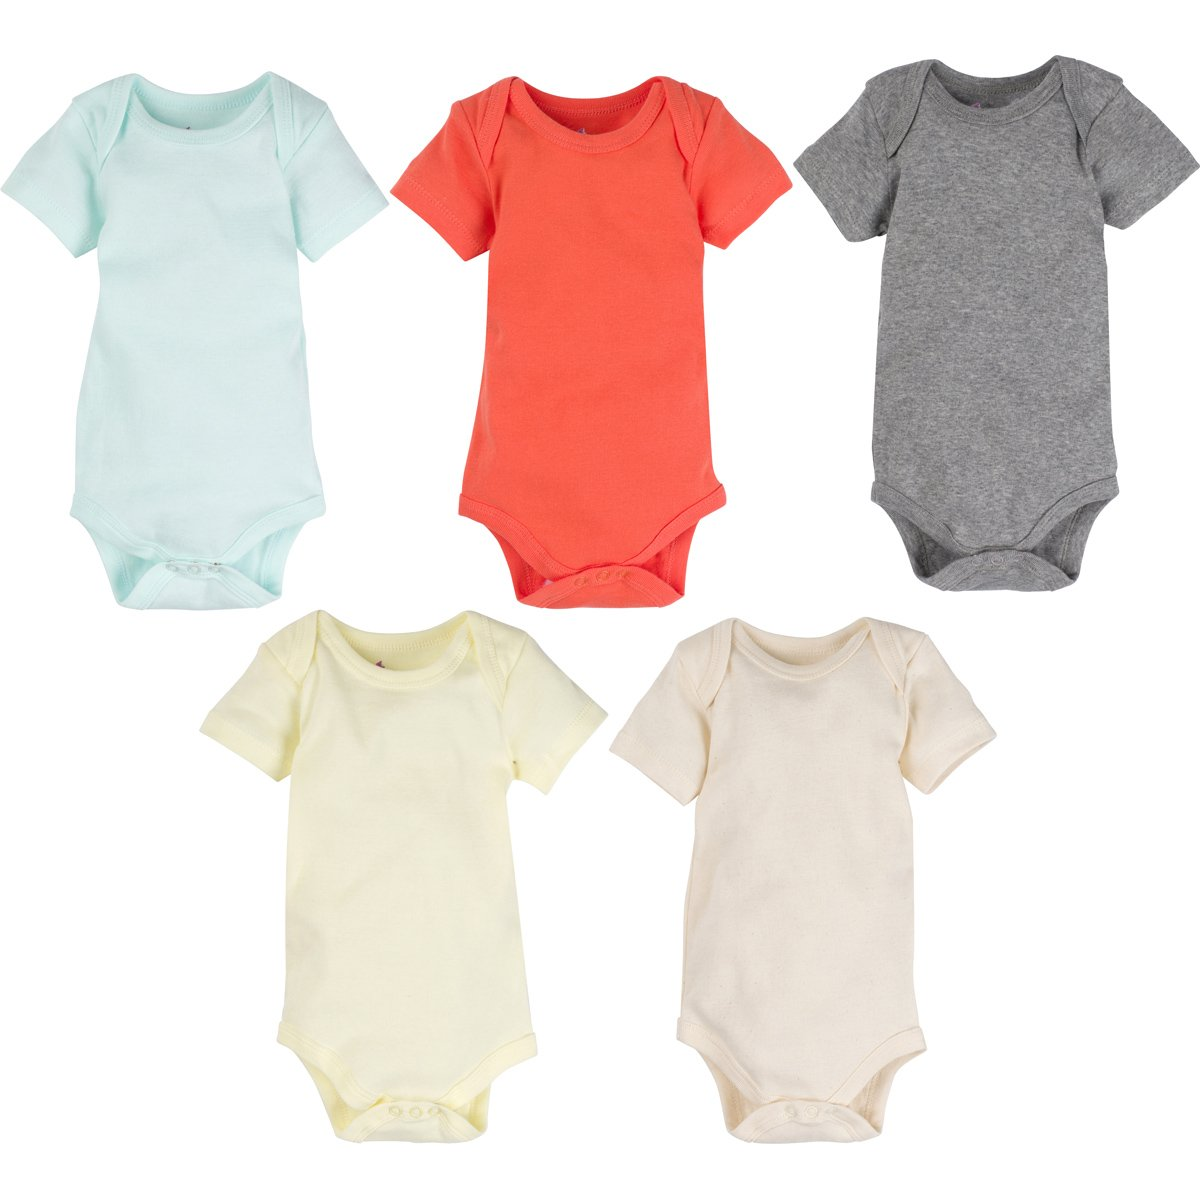 MiracleWear 5-Pack Neutral Unisex Solid Color Infant Low Cost Bodysuits for Boy Girl Newborn Baby